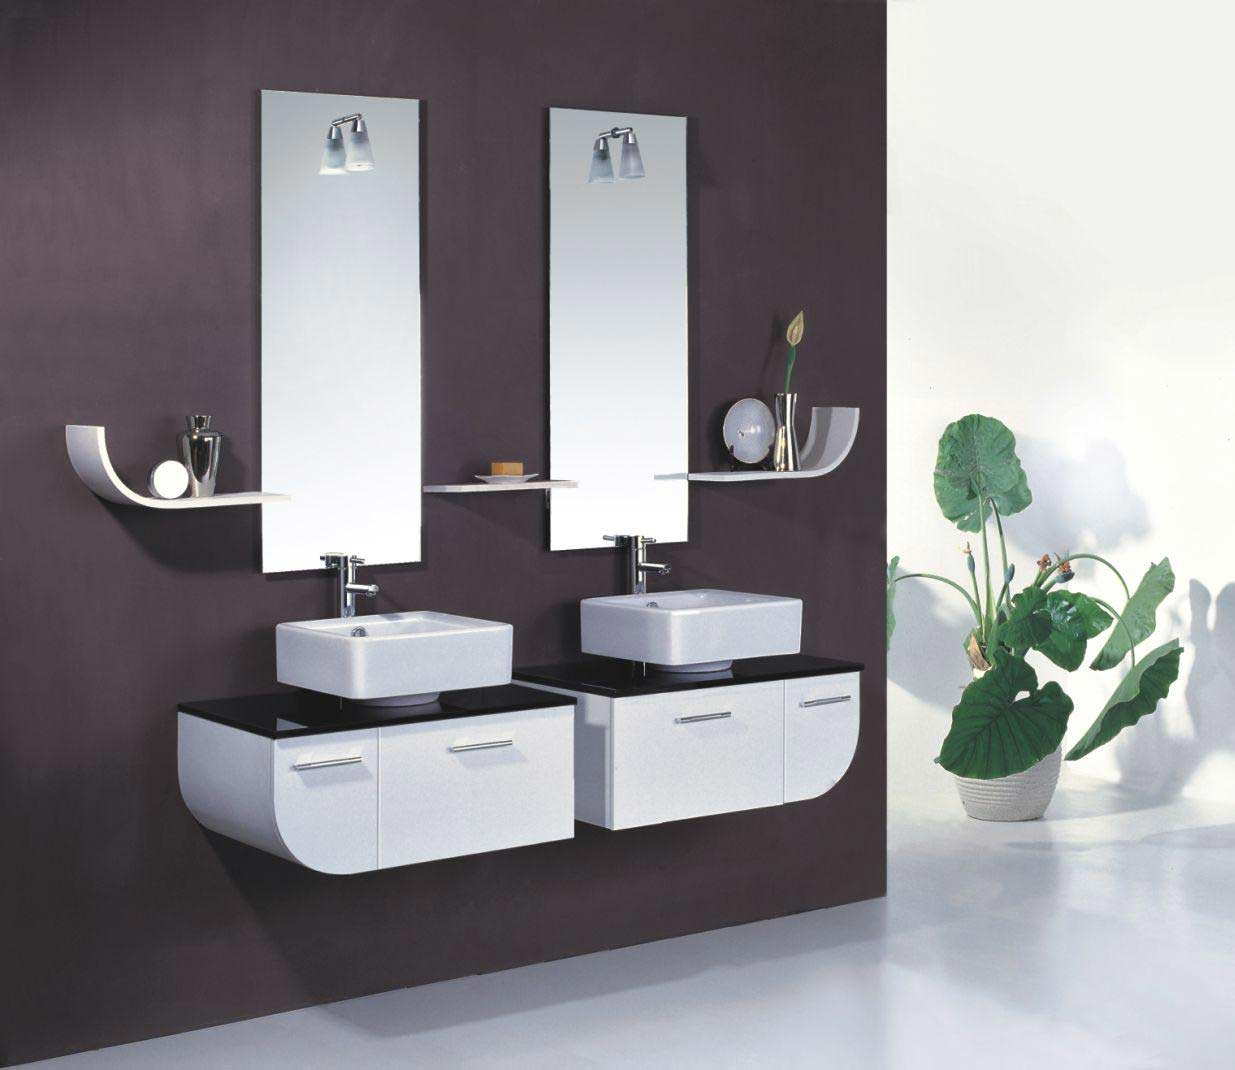 Choose White Vanities and Sinks under Frameless Bathroom Vanity Mirrors on Dark Painted Wall